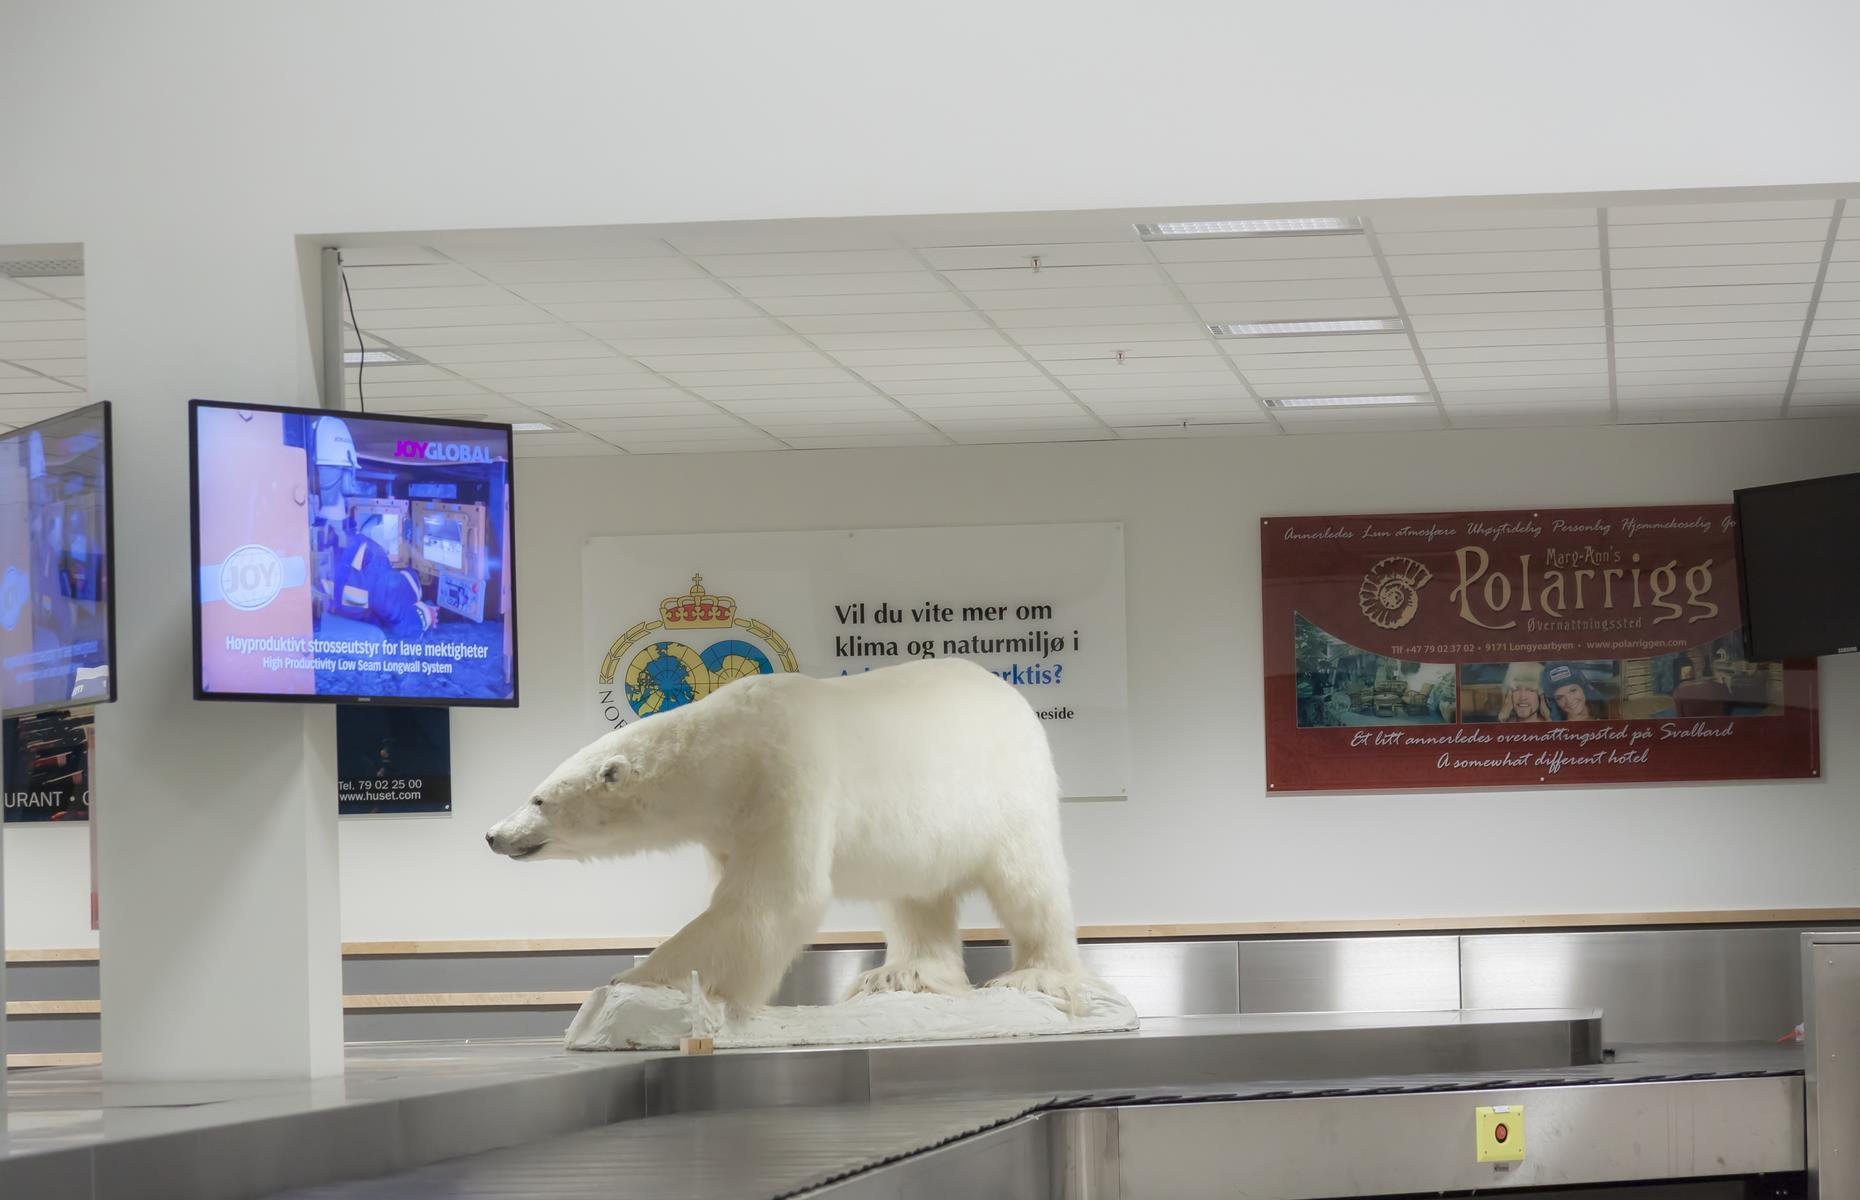 Slide 37 of 44: Located just to the northwest of the archipelago's largest settlement, Longyearbyen, Svalbard Airport operates domestic flights only between Oslo and Tromsø. In keeping with the Arctic theme, there's a gigantic stuffed polar bear keeping a watchful eye over the baggage carousel. After all, polar bears outnumber humans in this far-flung frozen wilderness. From HEL to CIA: discover the hilarious real airport codes